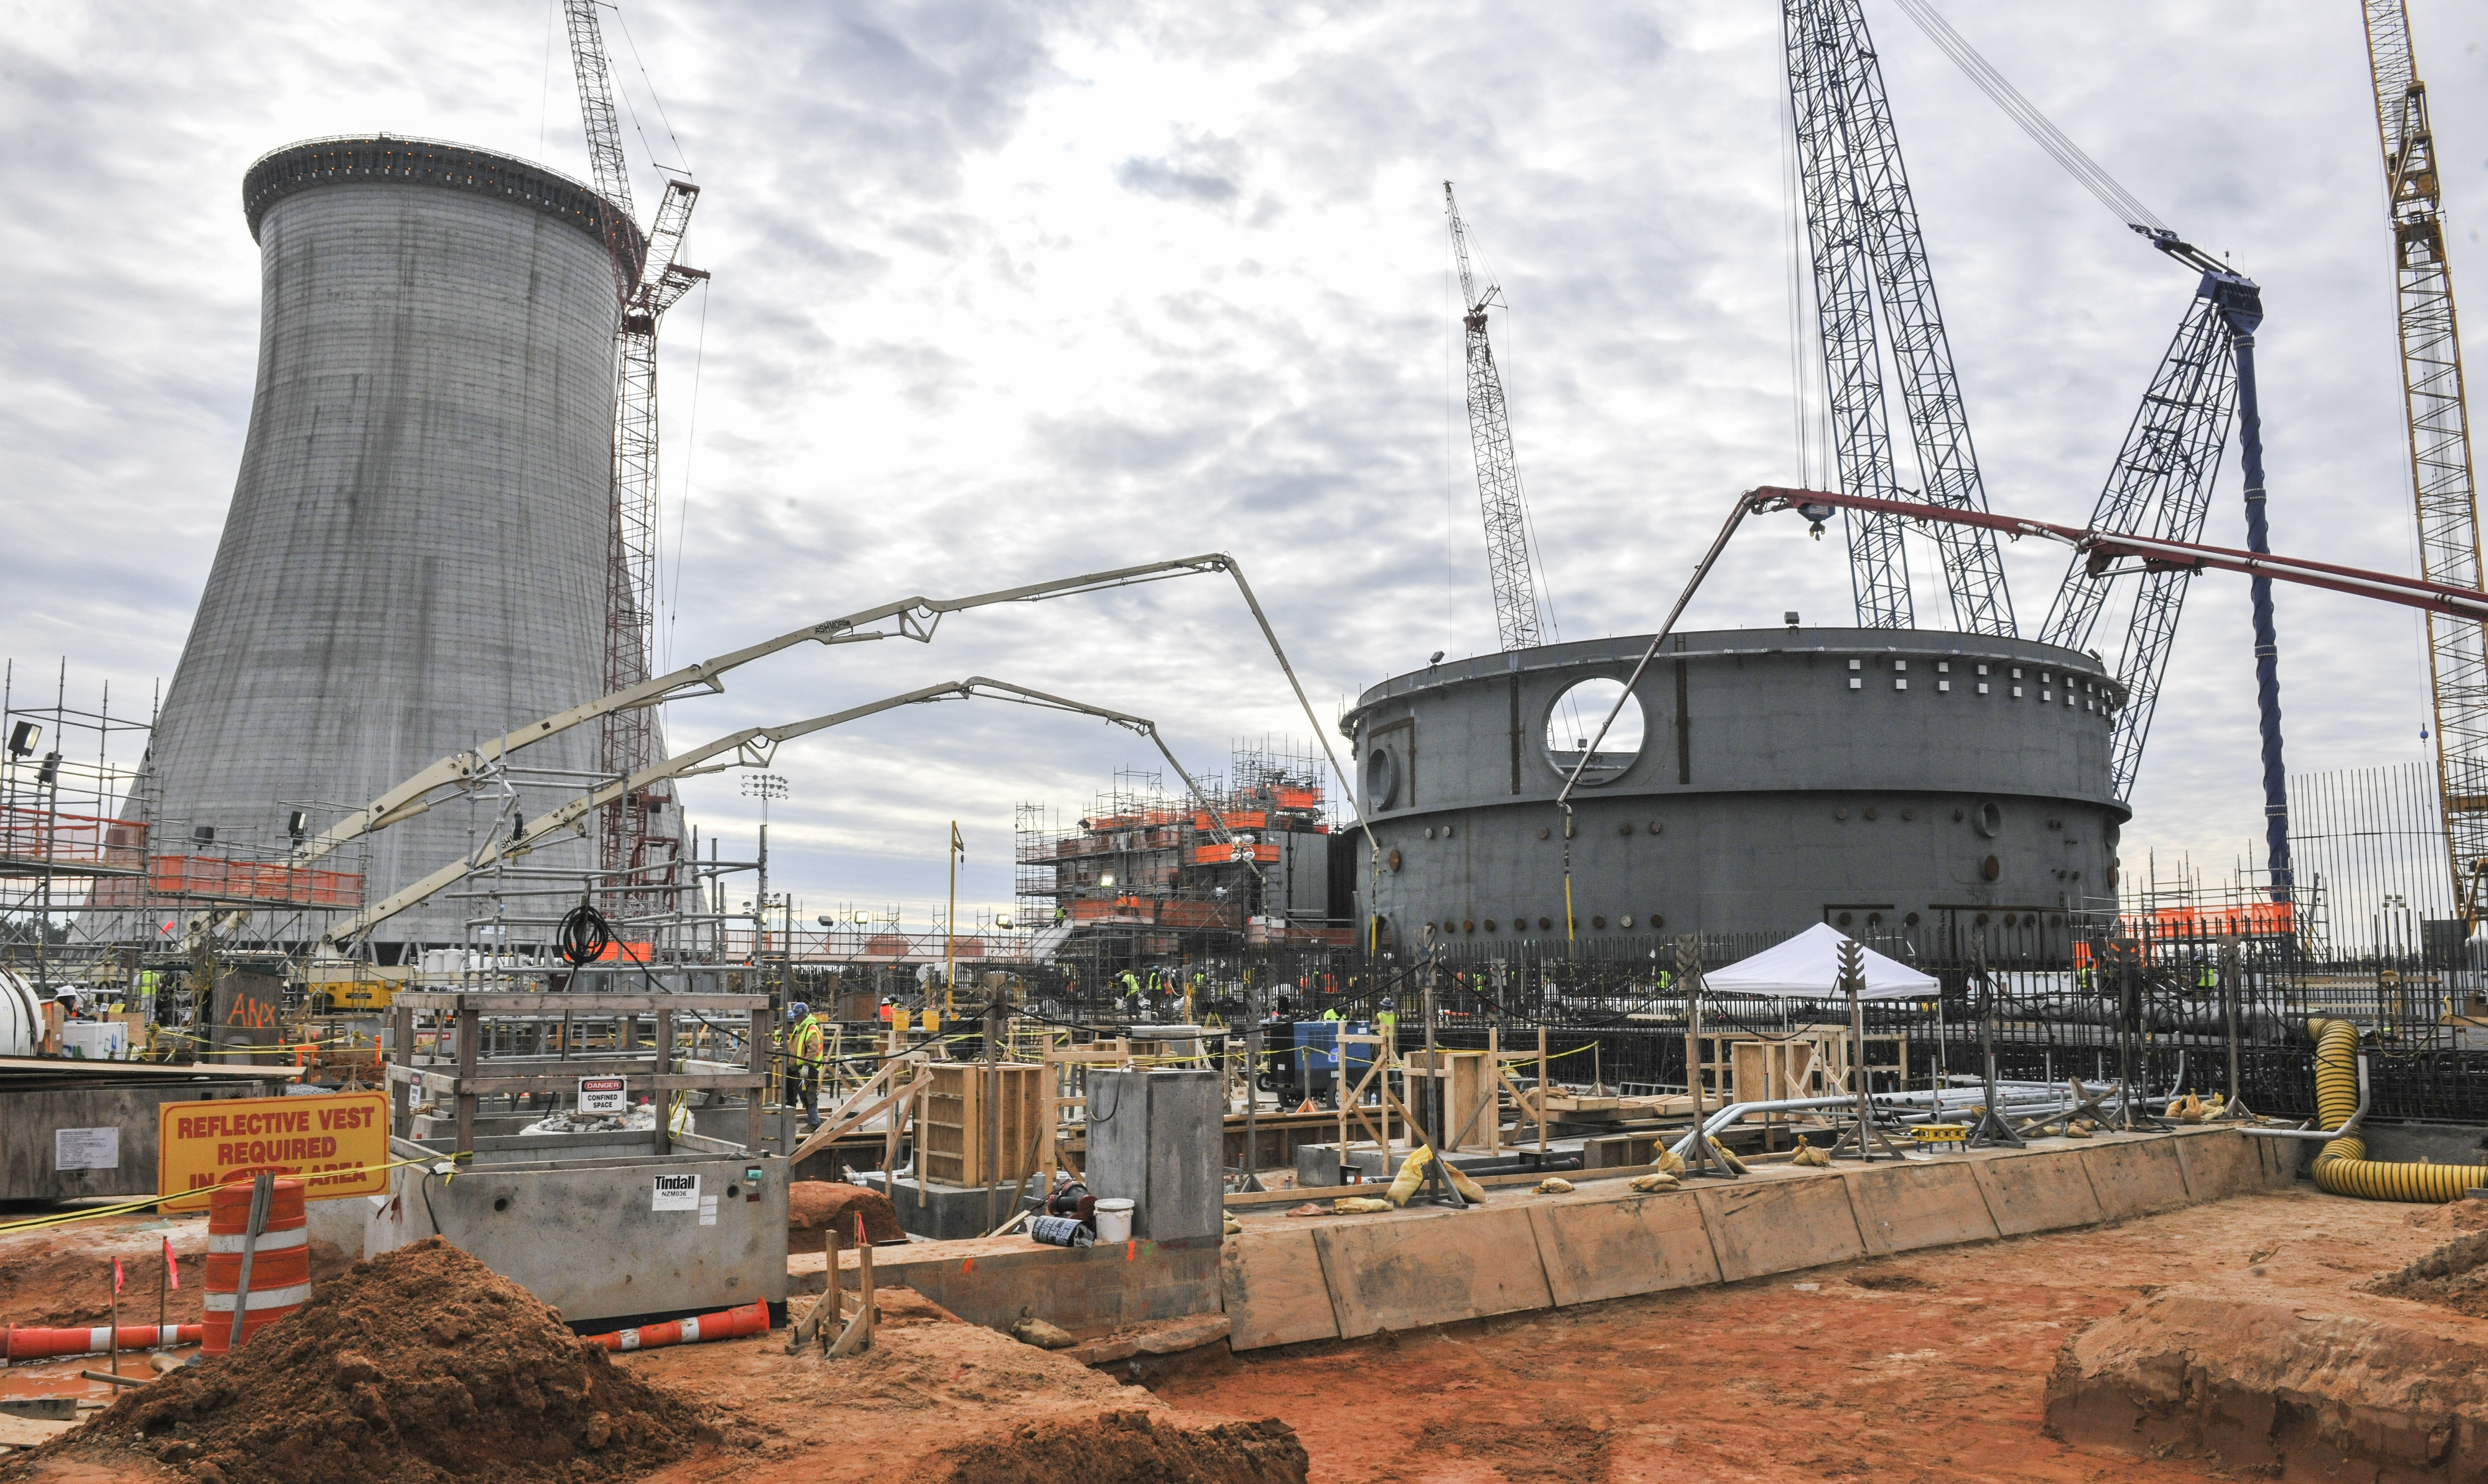 Vogtle_concrete Concrete being placed in the auxiliary building in January 2015 at the Vogtle Electric Power Station. Two Westinghouse AP1000 reactors are assembling in Georgia and, after several years of delay, are scheduled to start producing electricity in 2019 and 2020. When they do, the state's nuclear share of power generation will rise from 22 percent to 27 percent.